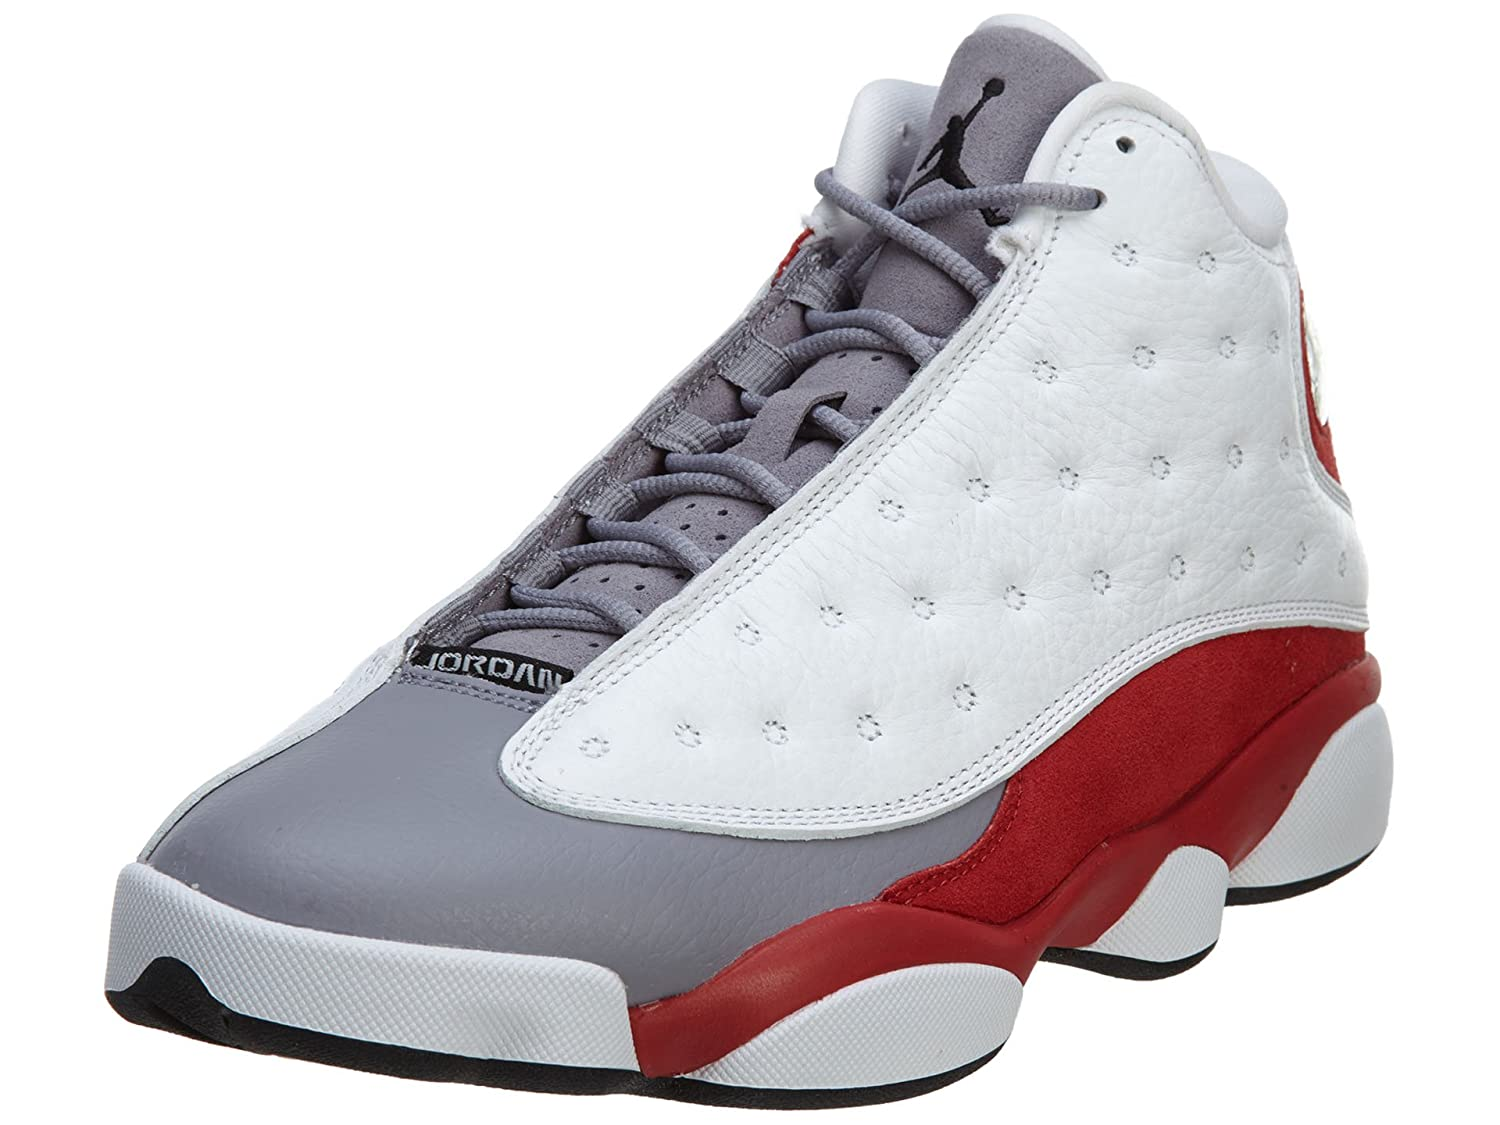 AIR JORDAN - エアジョーダン - AIR JORDAN 13 RETRO 'GREY TOE' - 414571-126 (メンズ) B00PUYNSQY  11.5